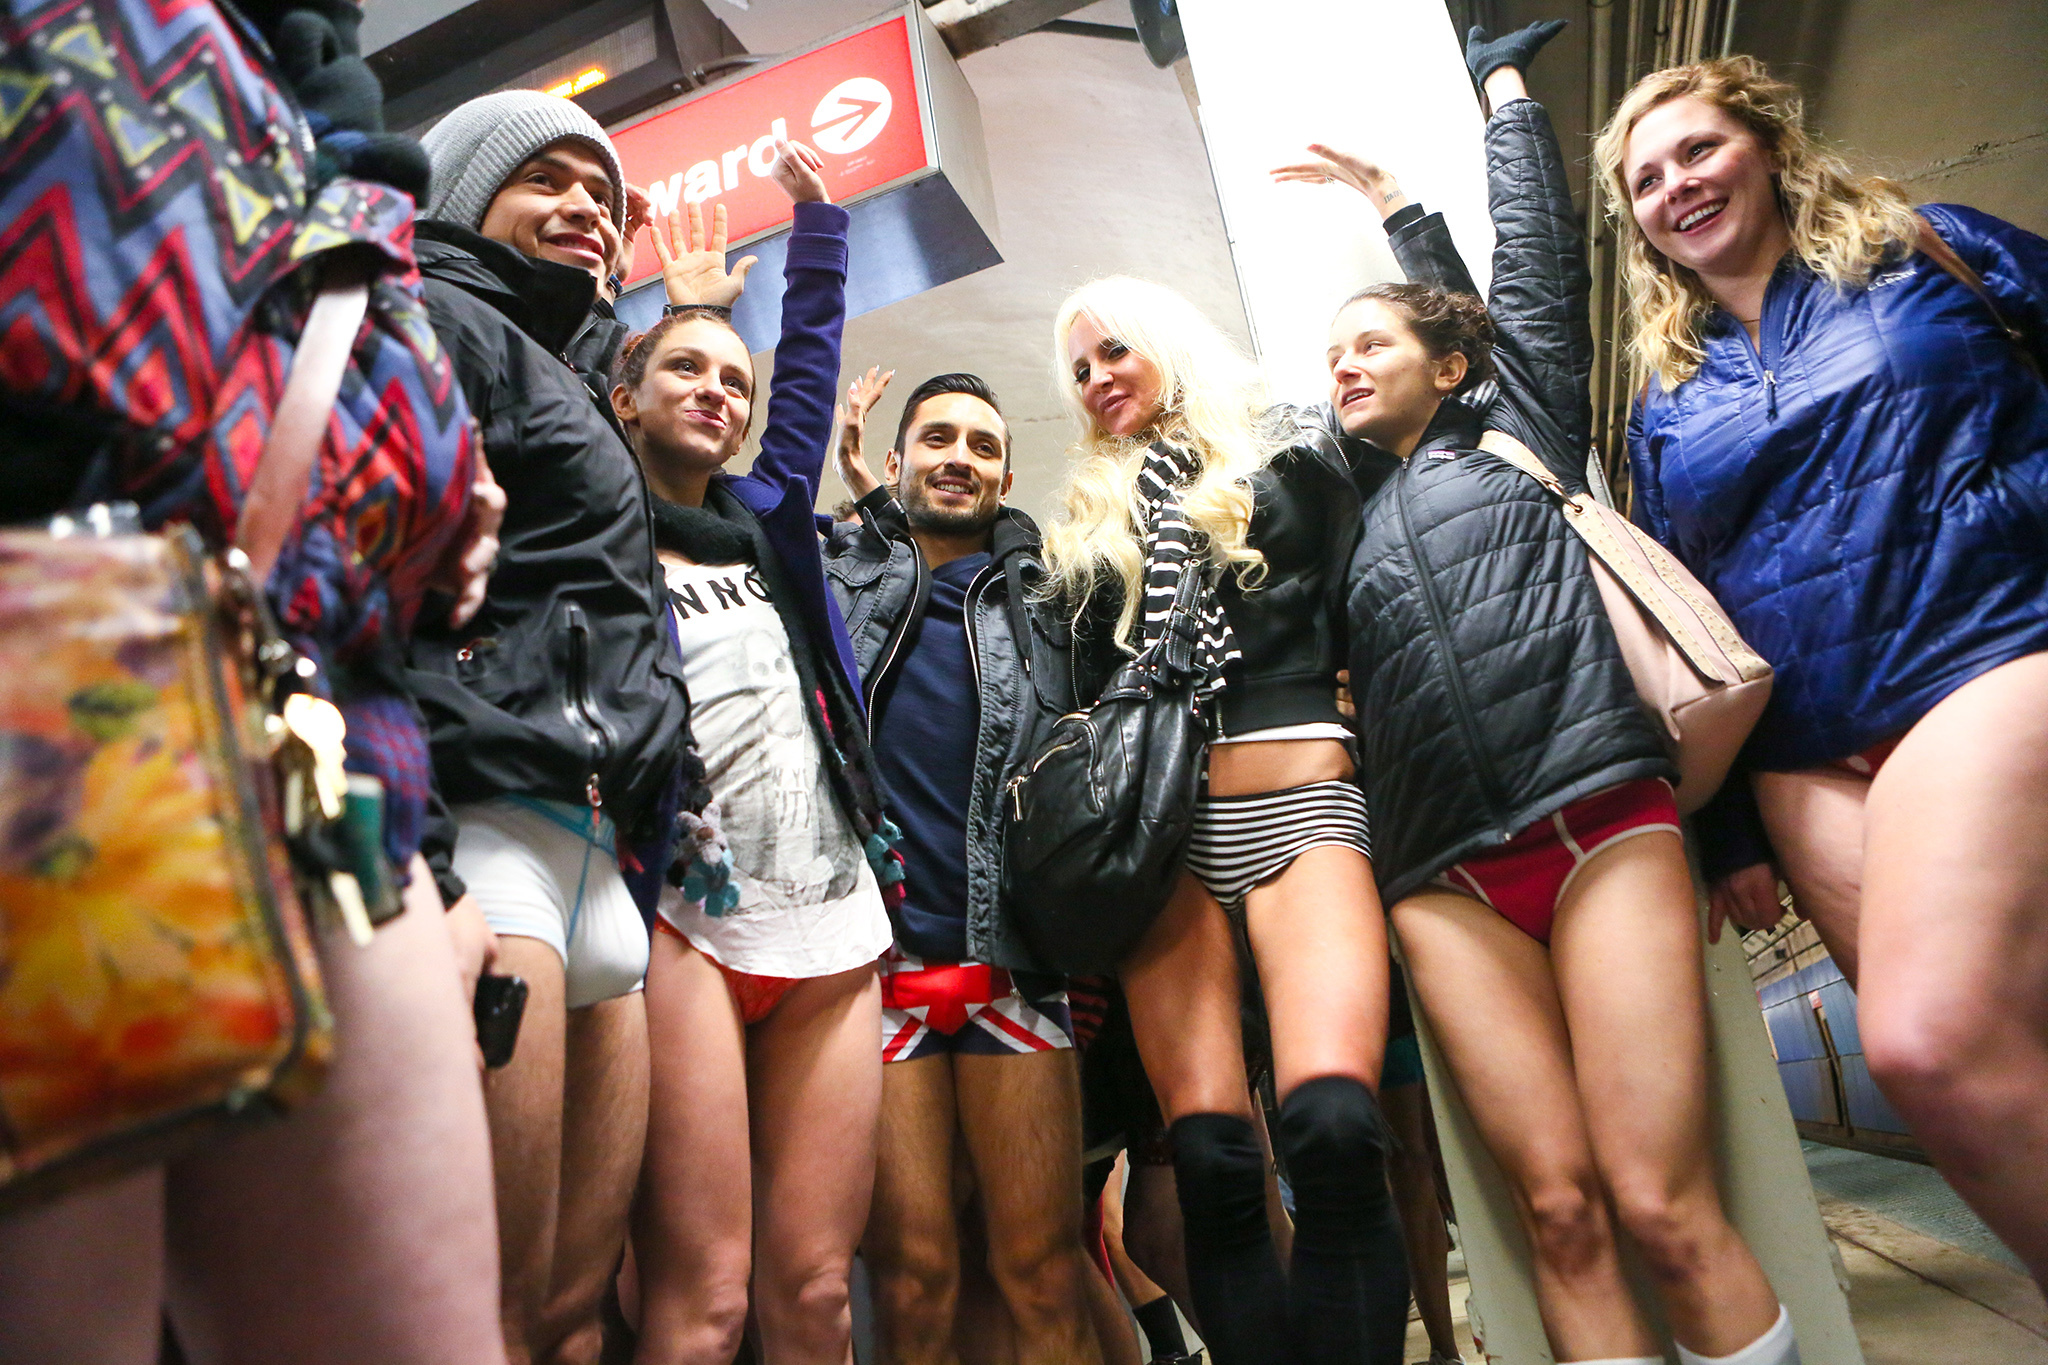 Photos: No Pants Subway Ride